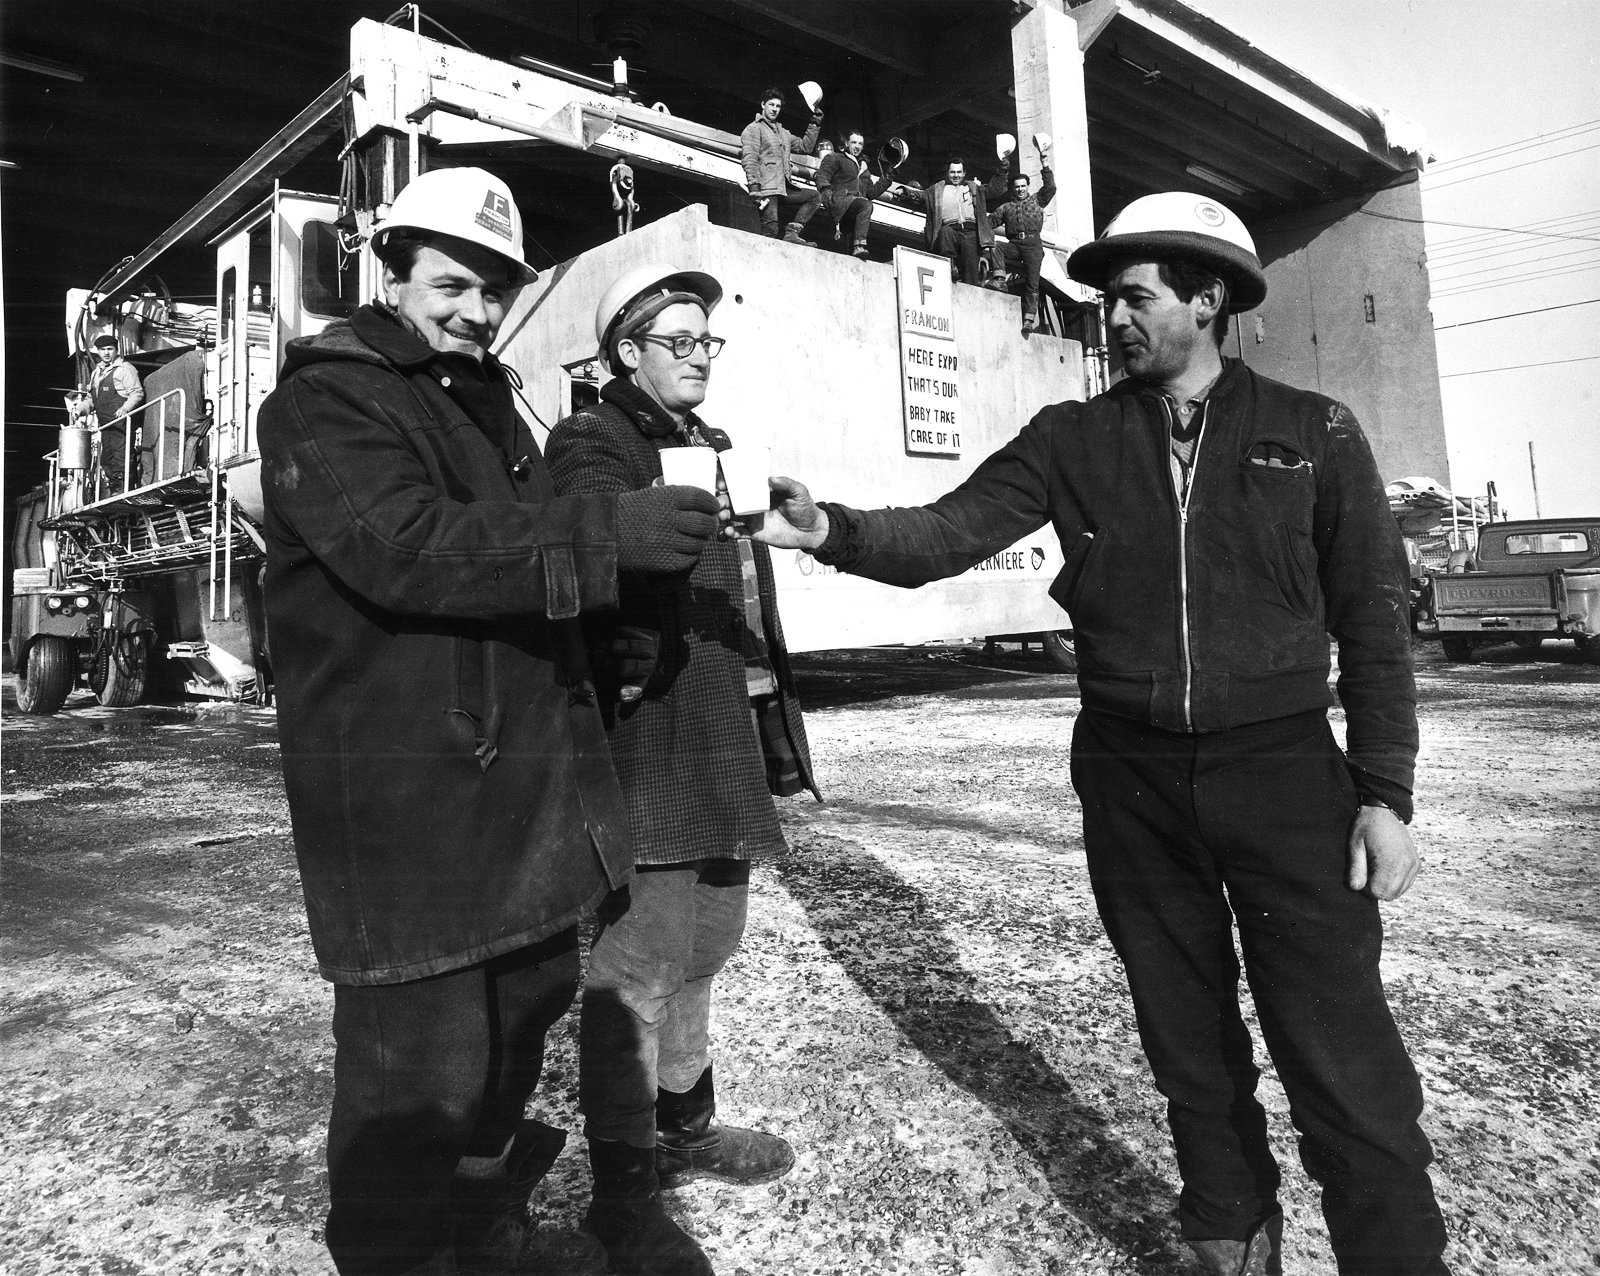 Builders toast the casting completion of the last box at Habitat '67 in Montreal, Quebec.  Photo 1 of 6 in A Look Back at Habitat '67 with Moshe Safdie